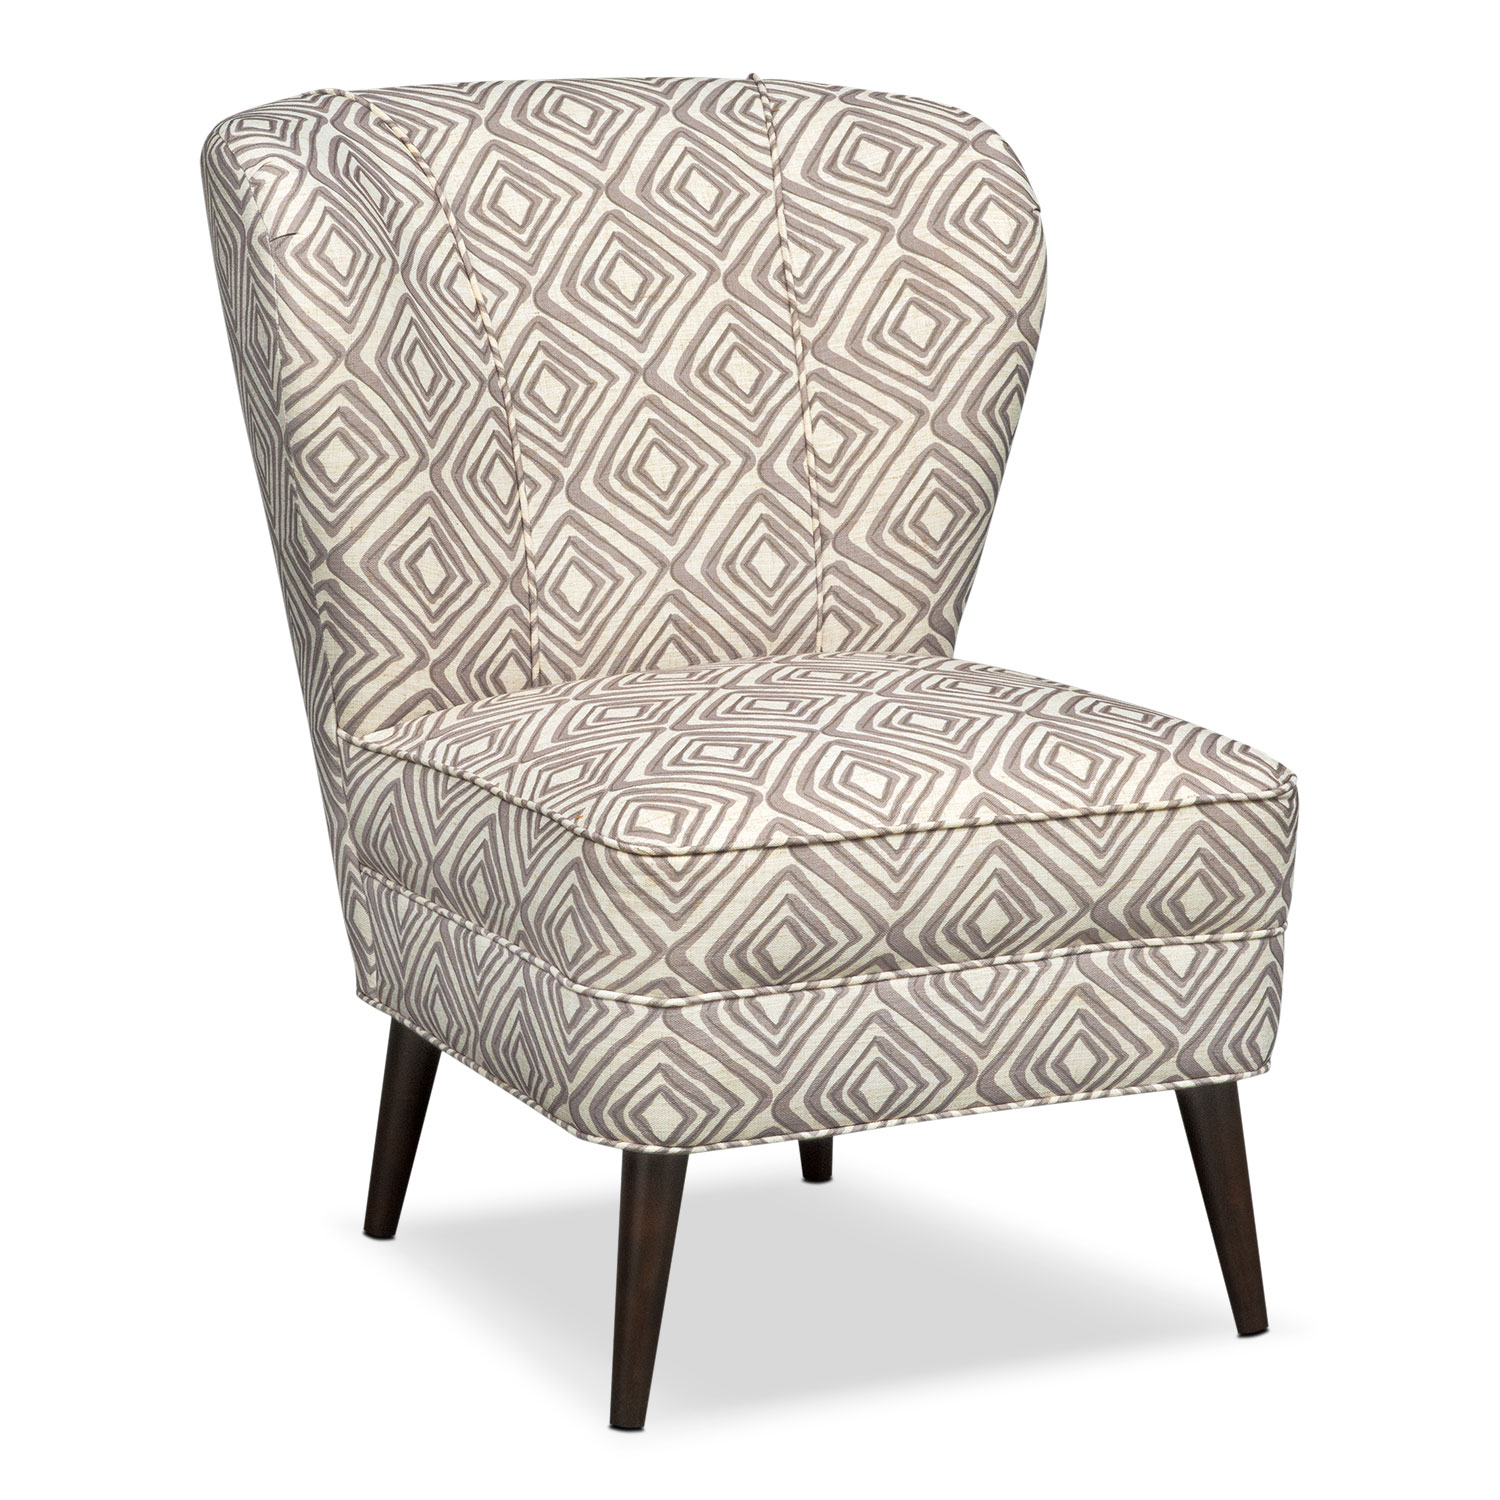 Living Room Furniture - Jules Comfort Accent Chair - Cream Print